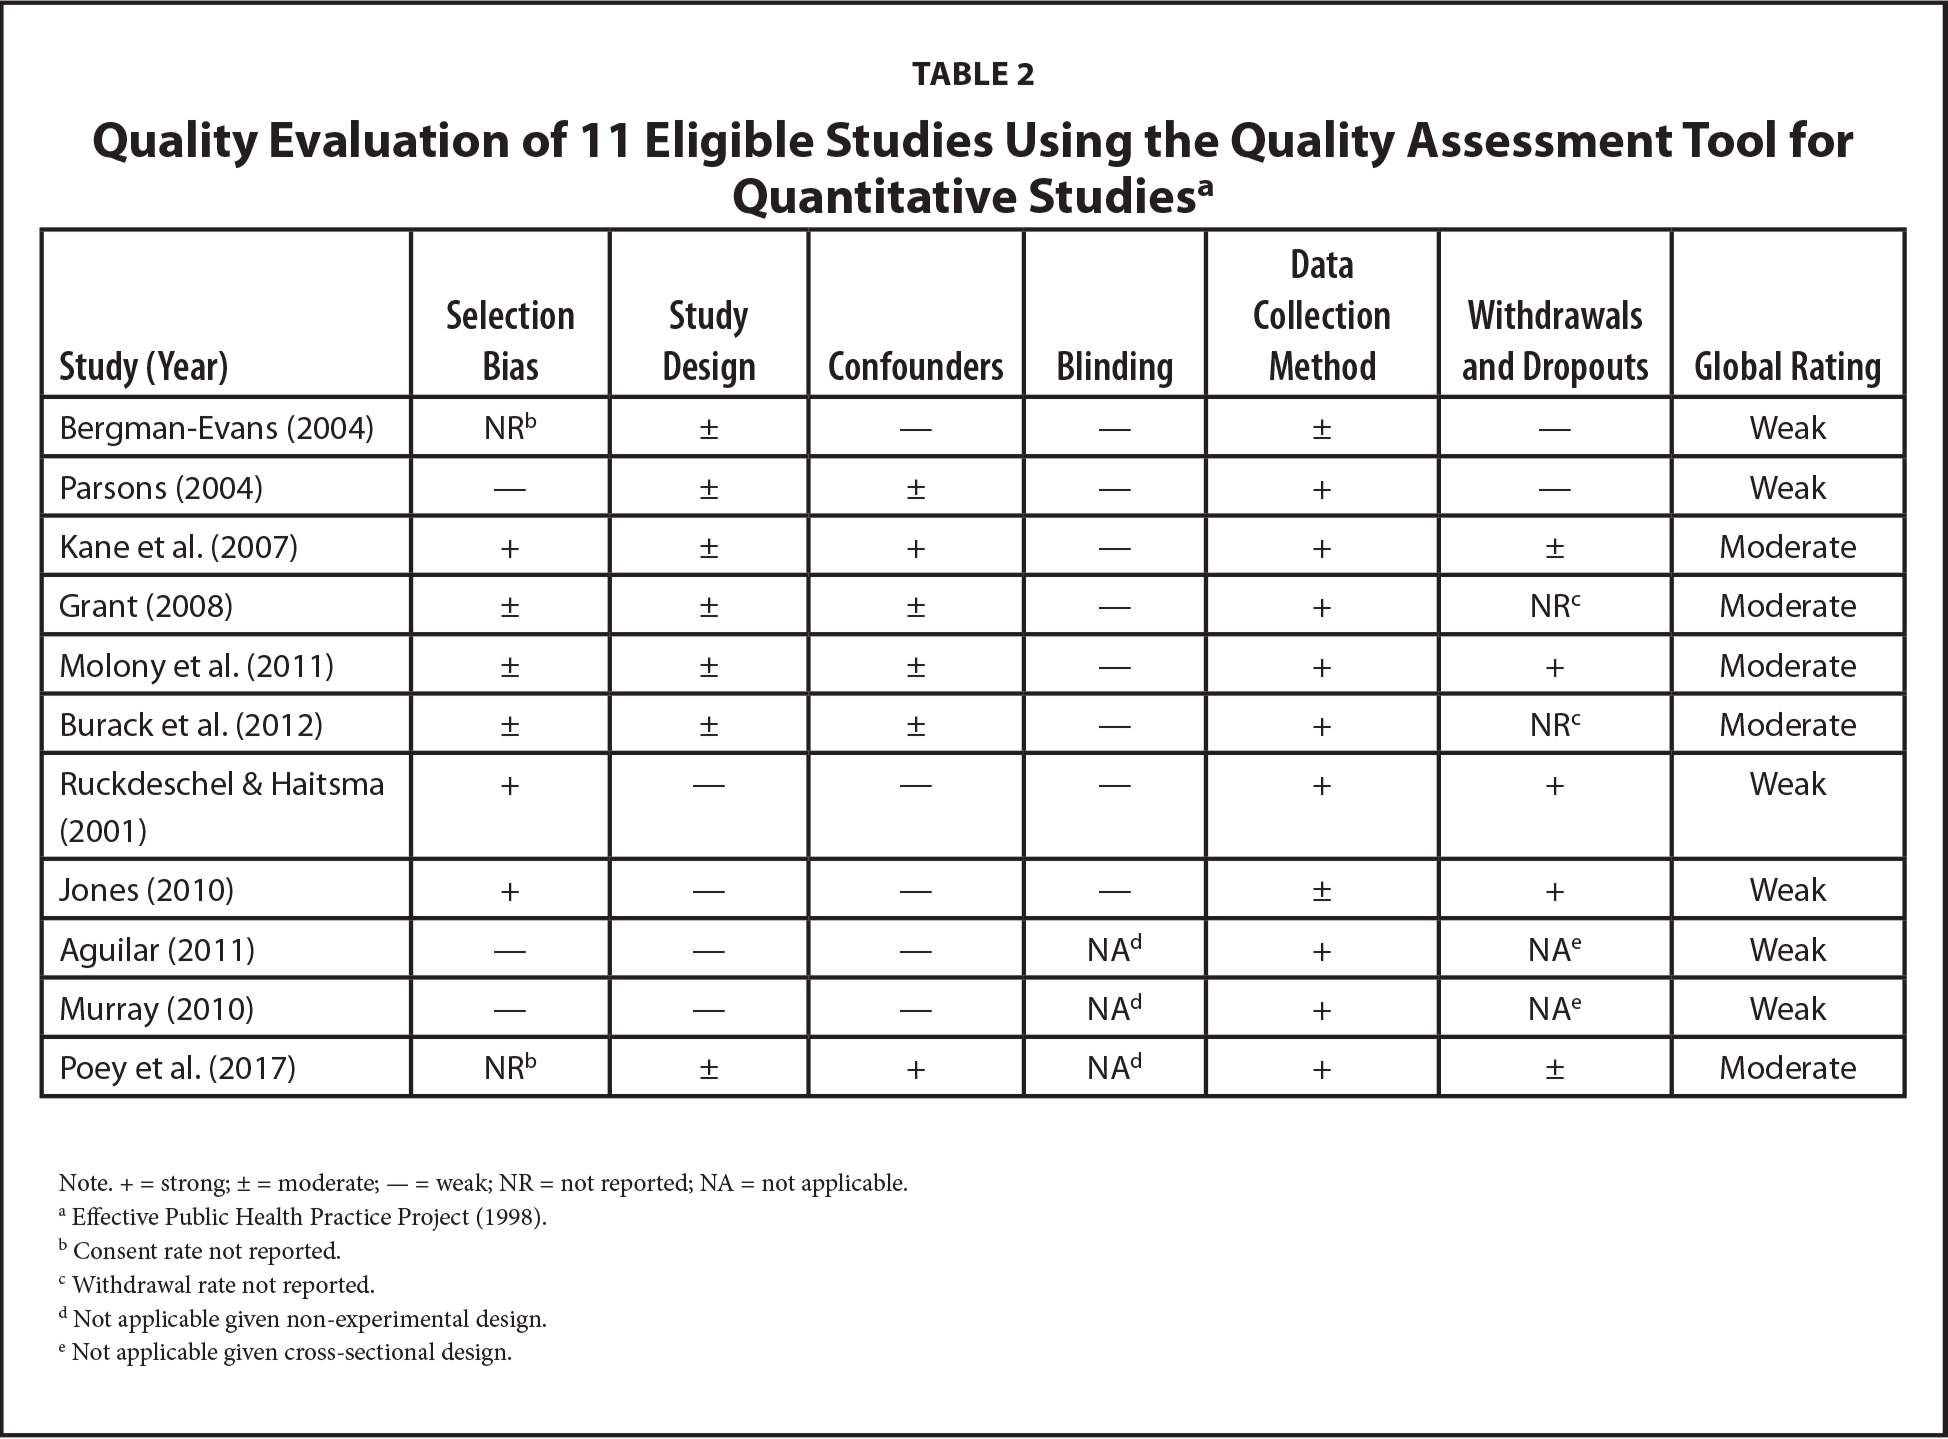 Quality Evaluation of 11 Eligible Studies Using the Quality Assessment Tool for Quantitative Studiesa